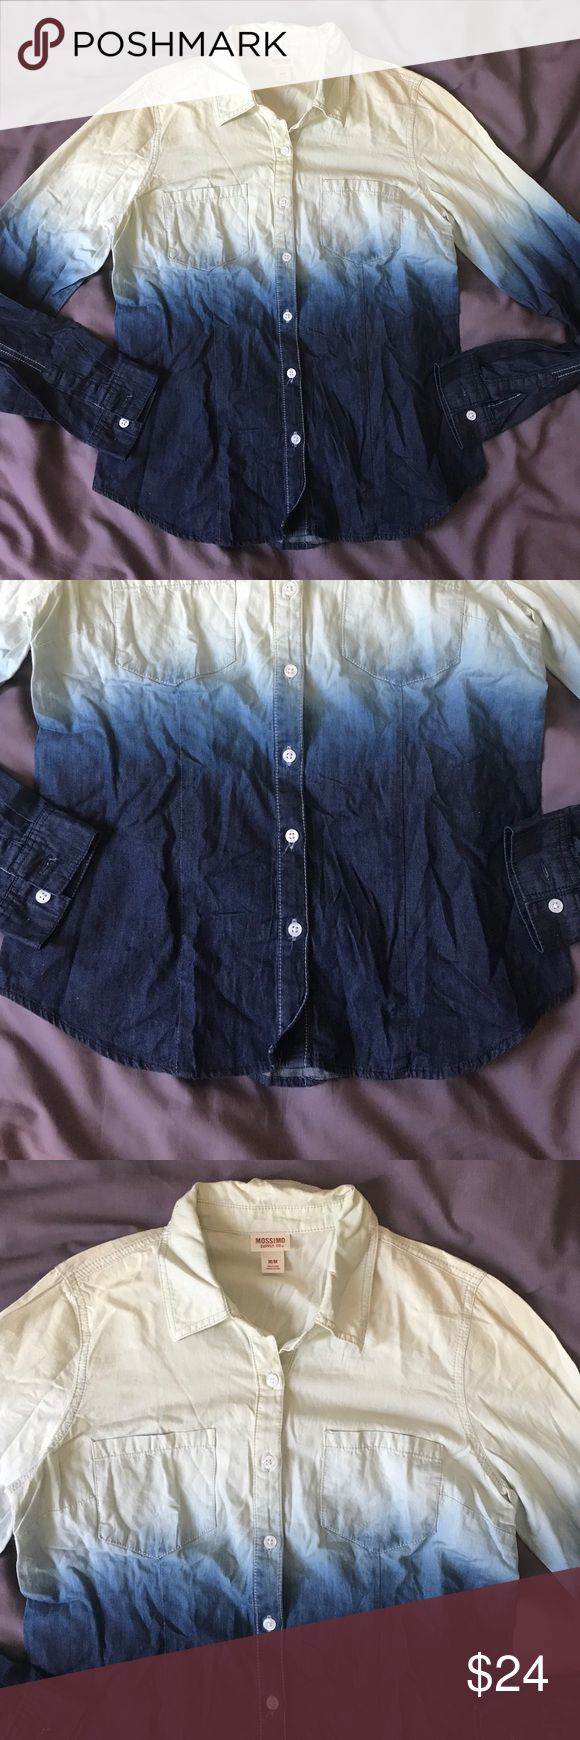 Mossimo cowboy acid wash shirt Mossimo button down acid wash cowboy shirt. New without tags, removed tags ended up being too big. MEDIUM Mossimo Supply Co Tops Button Down Shirts